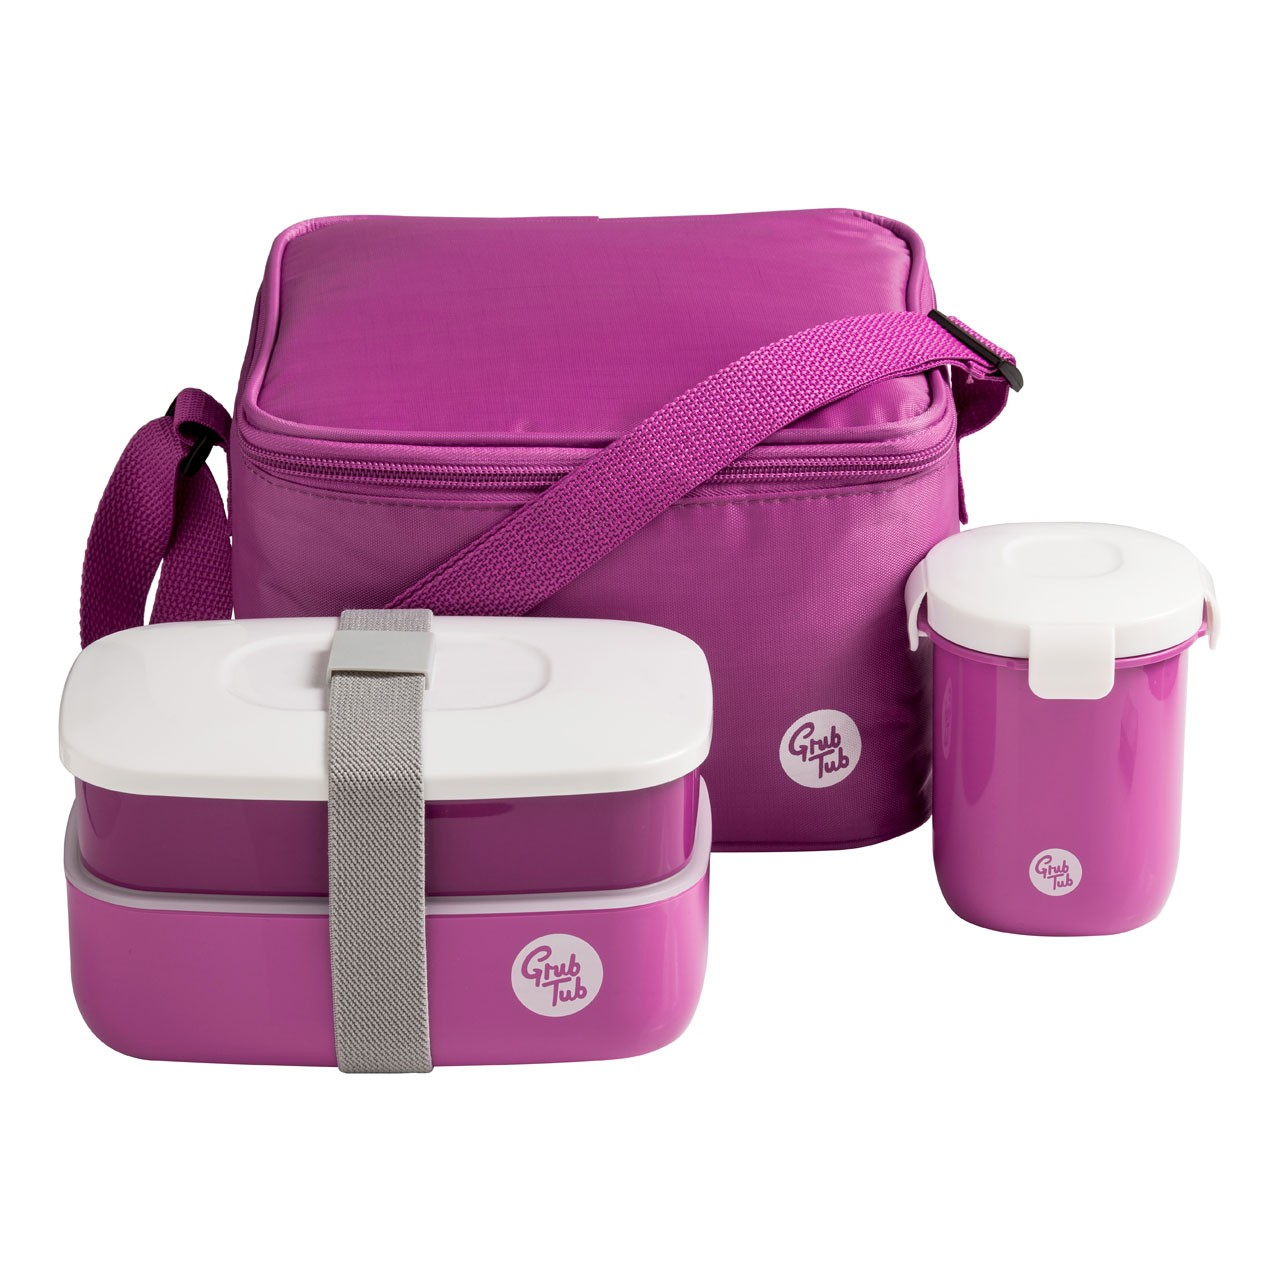 Grub Tub Lunch Box with 2 Containers/ Bag/Cutlery/Cup - Purple